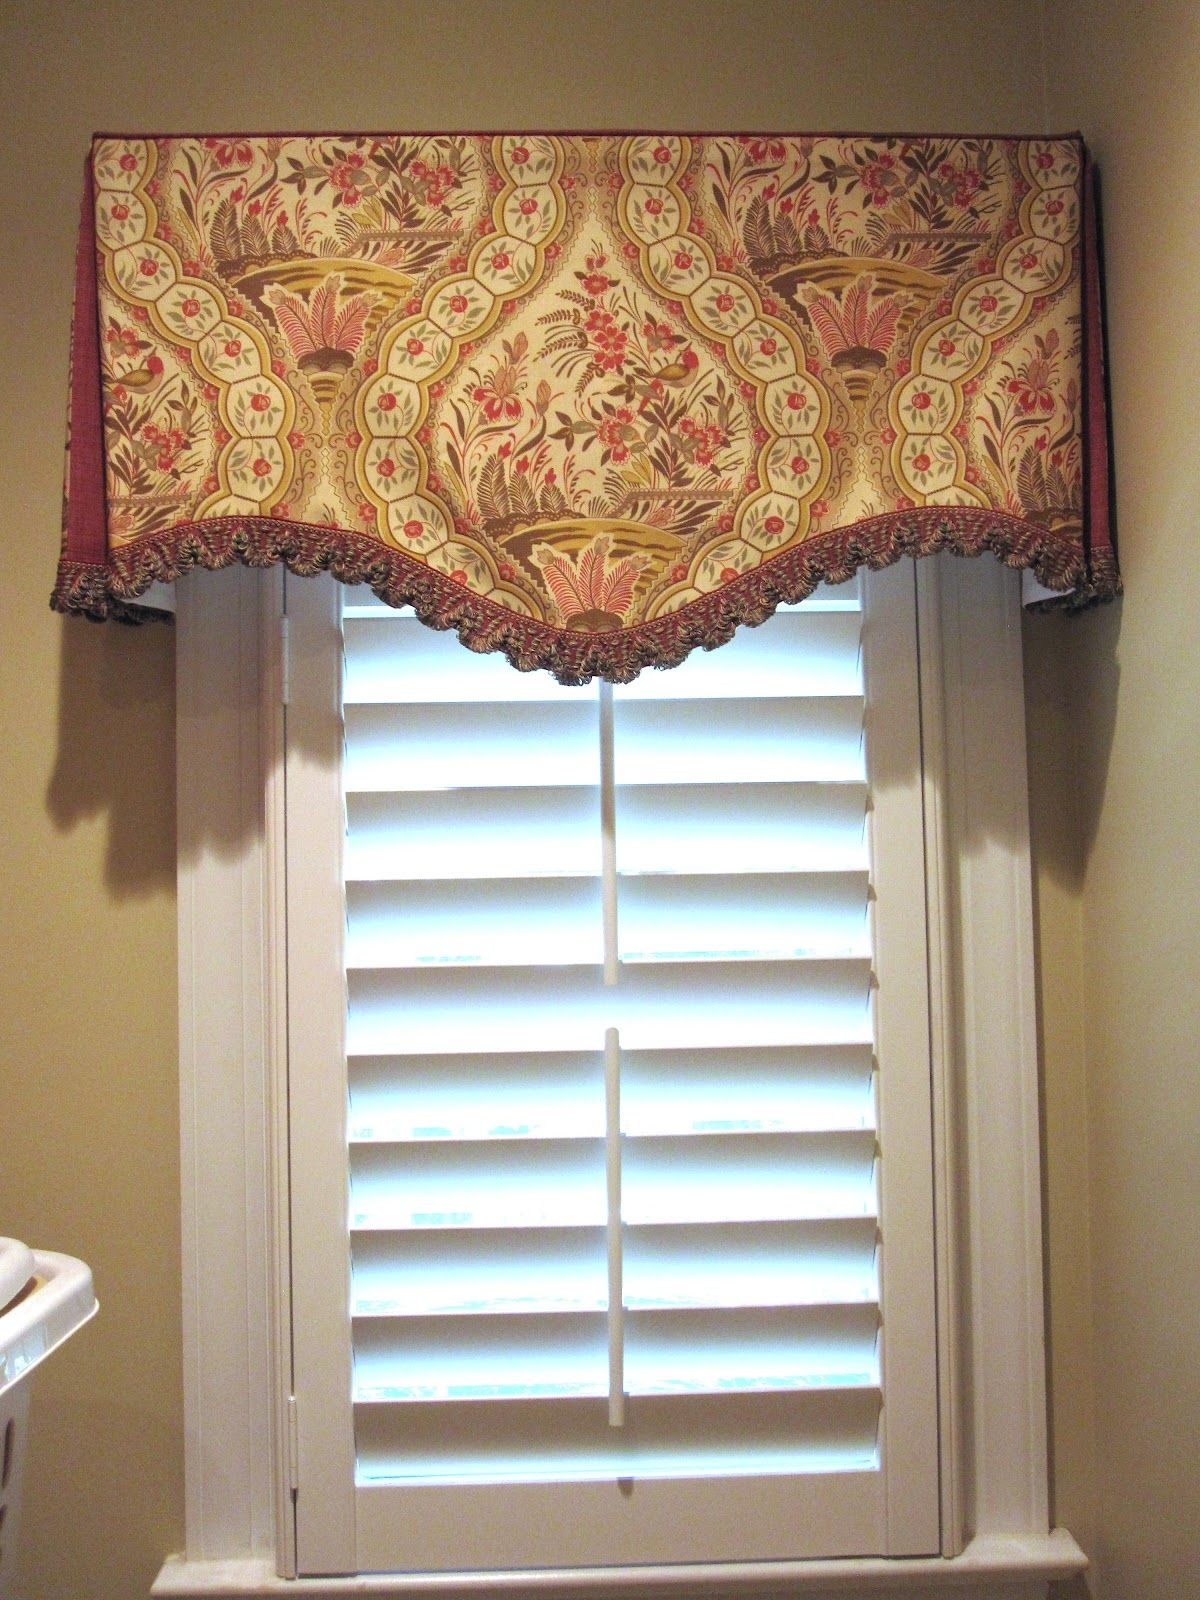 valances heirloom hei p valance qlt treatments spin wid crochet prod window living country